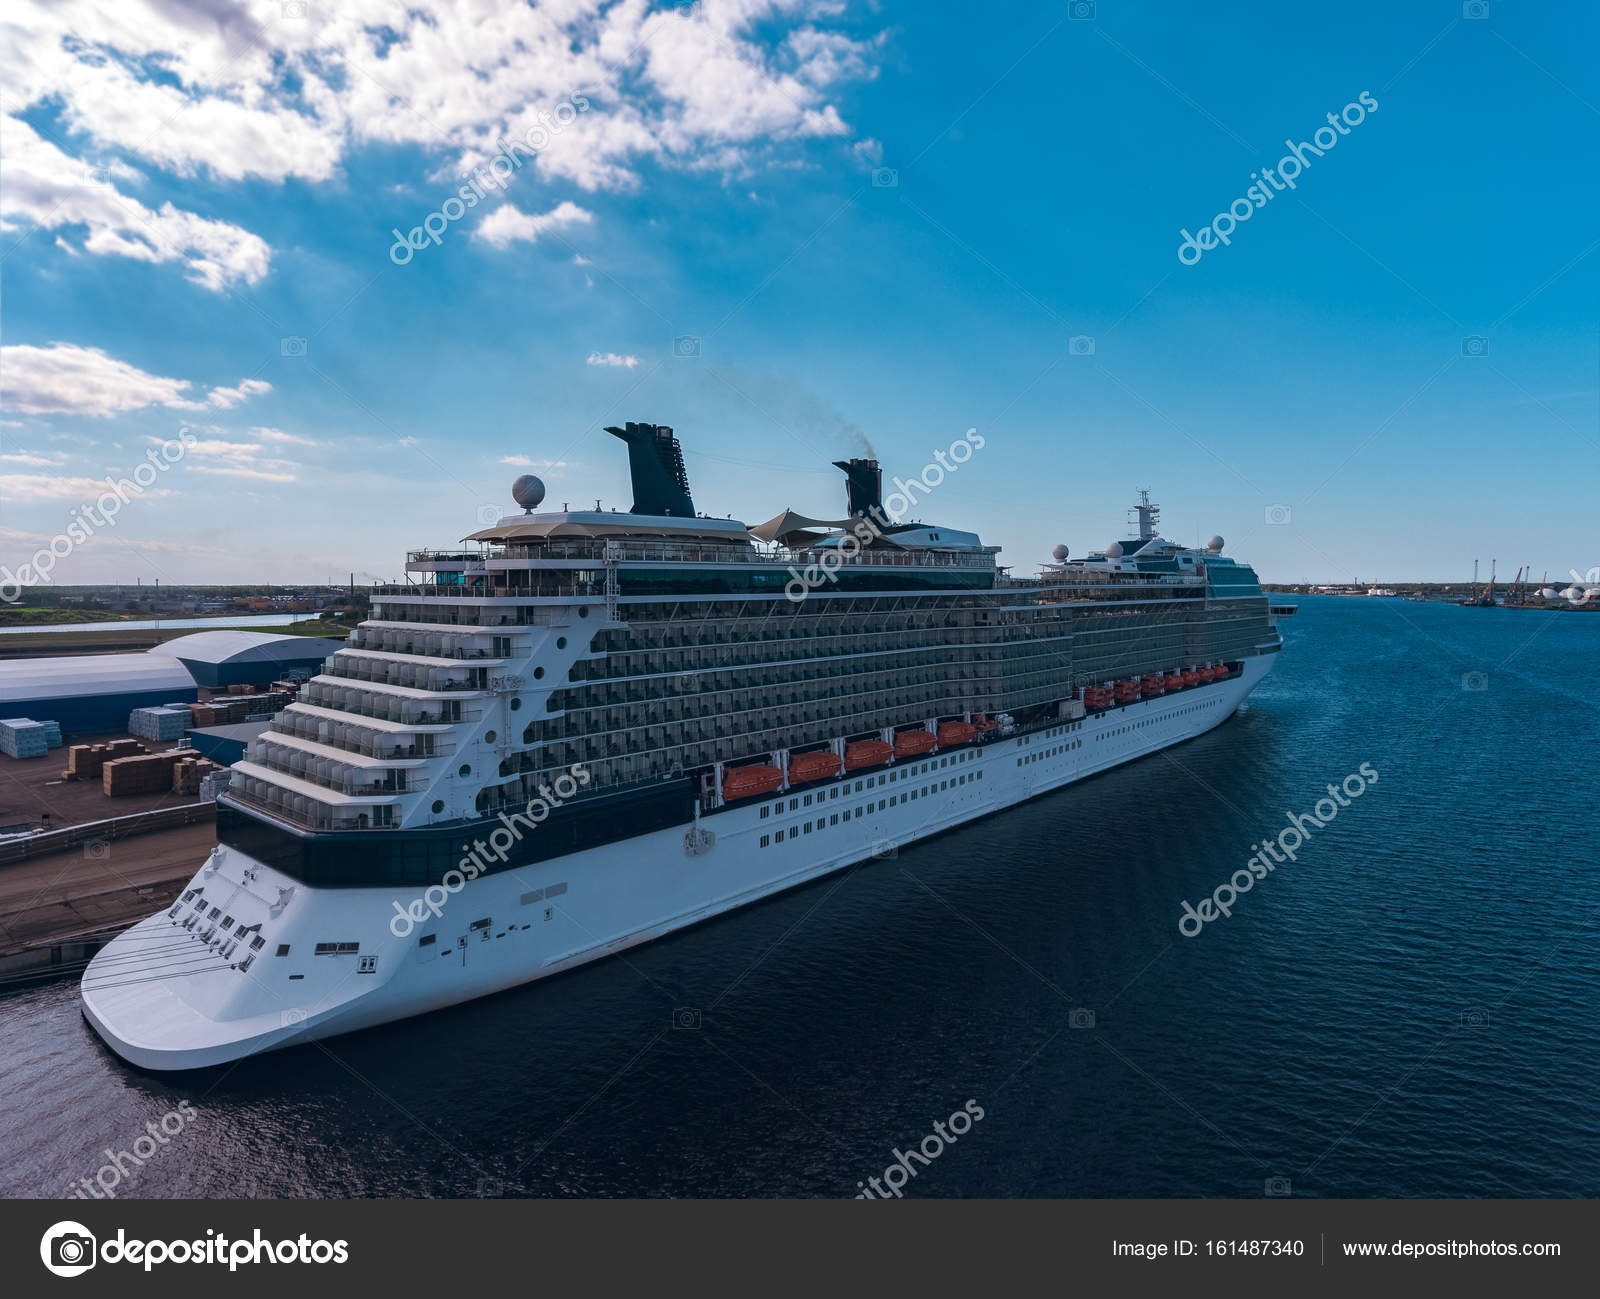 Giant Of Modern Photography At >> Giant Modern Cruise Liner Stock Editorial Photo C Sengnsp 161487340